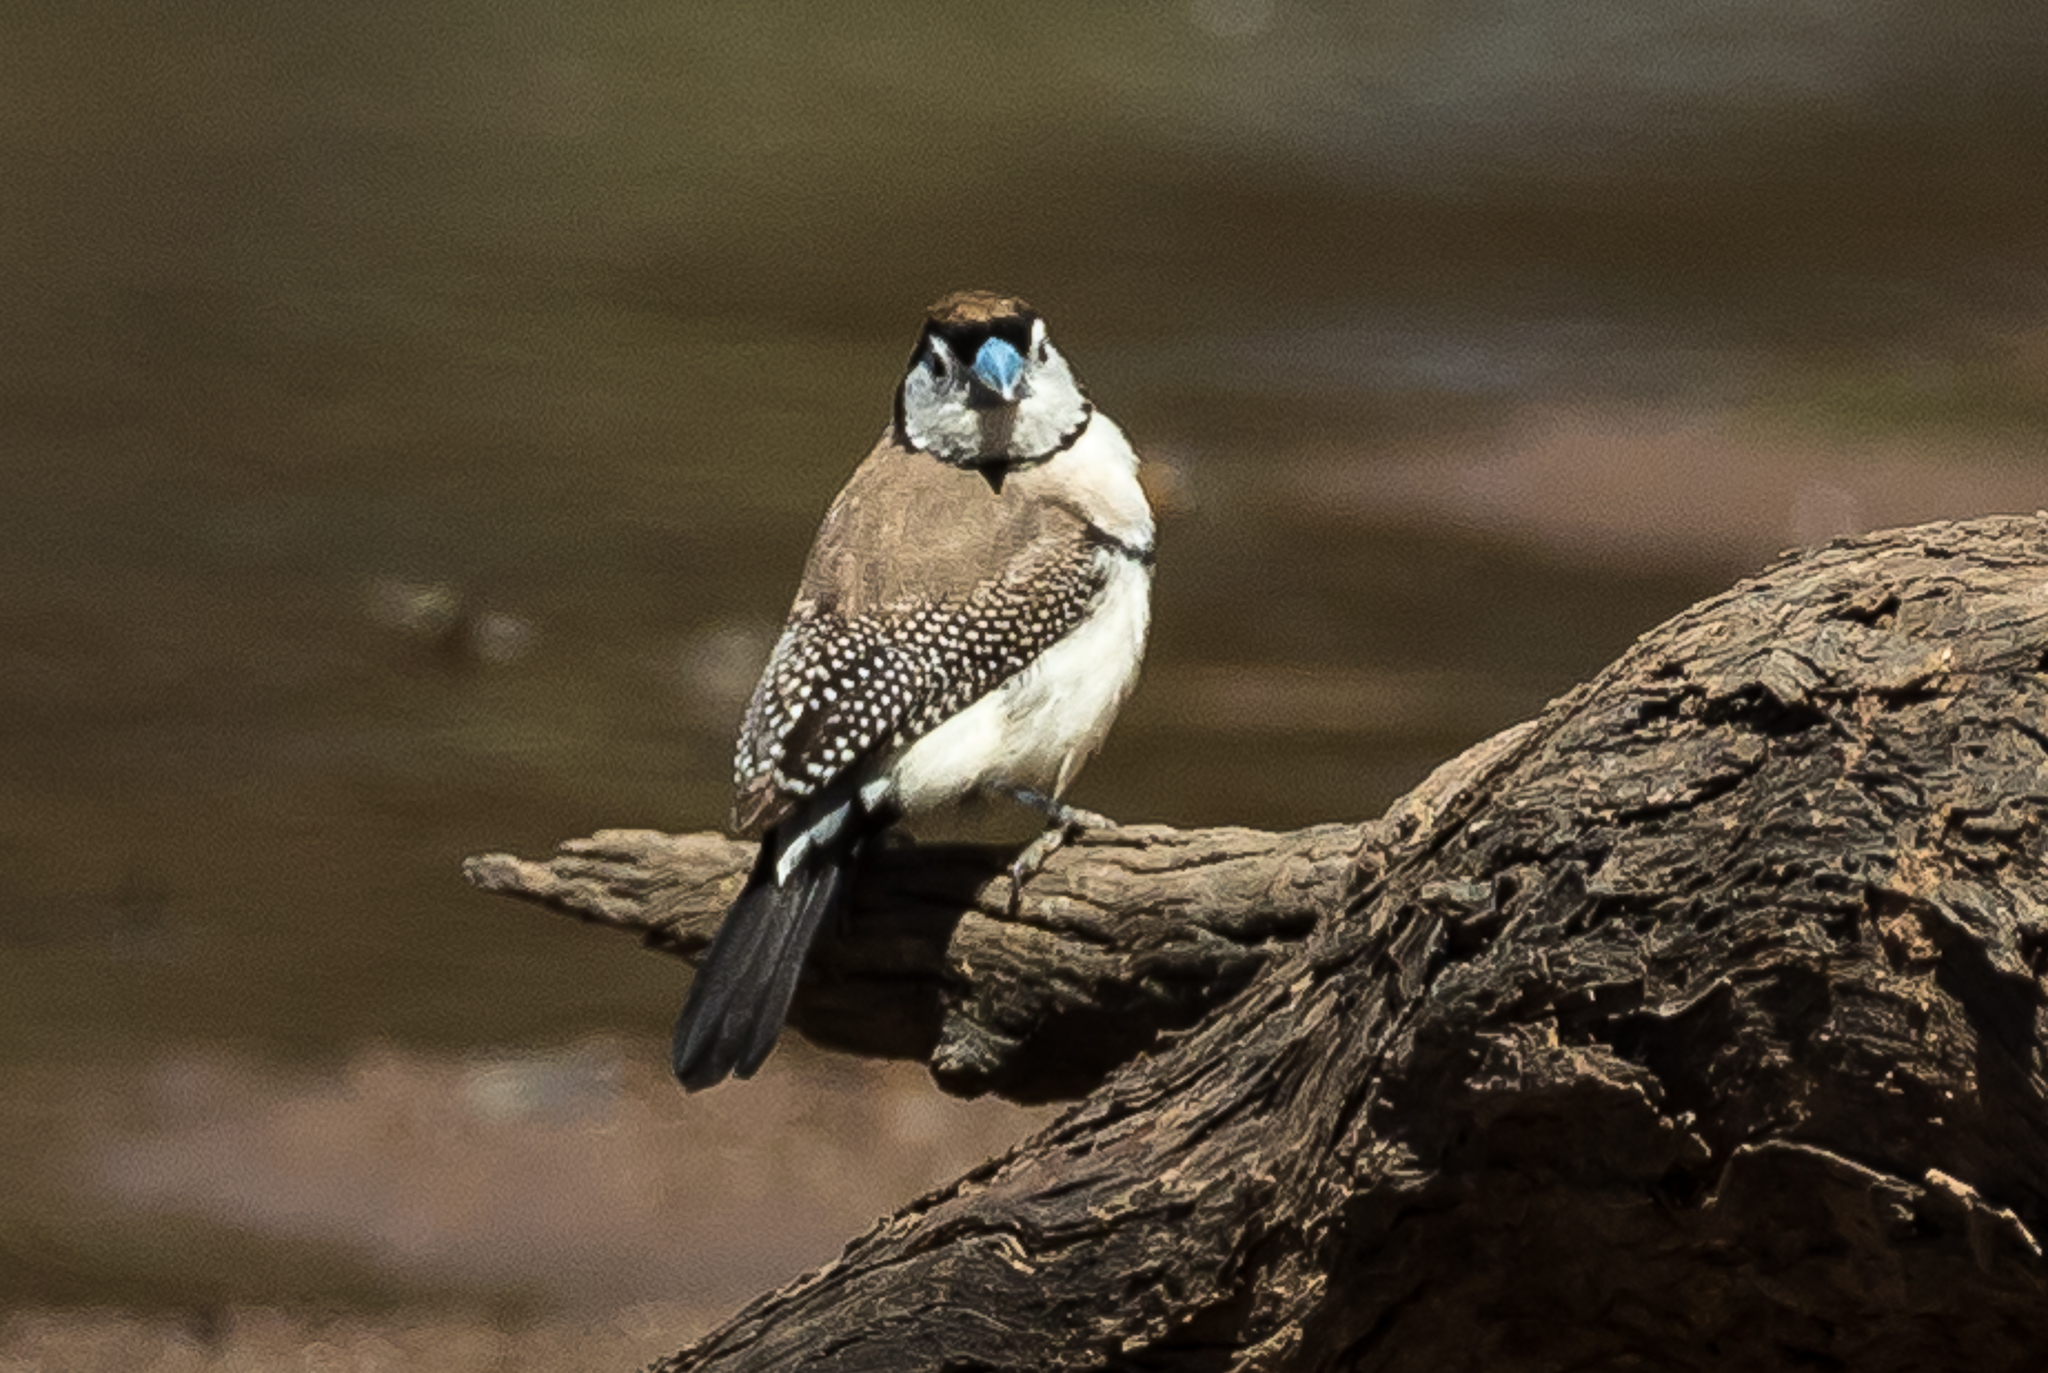 Double-barred Finches prefer dry grassy woodland and scrubland, feeding on seeds, but are never far from water. Again photographed at a waterhole in Cocoparra National Park.